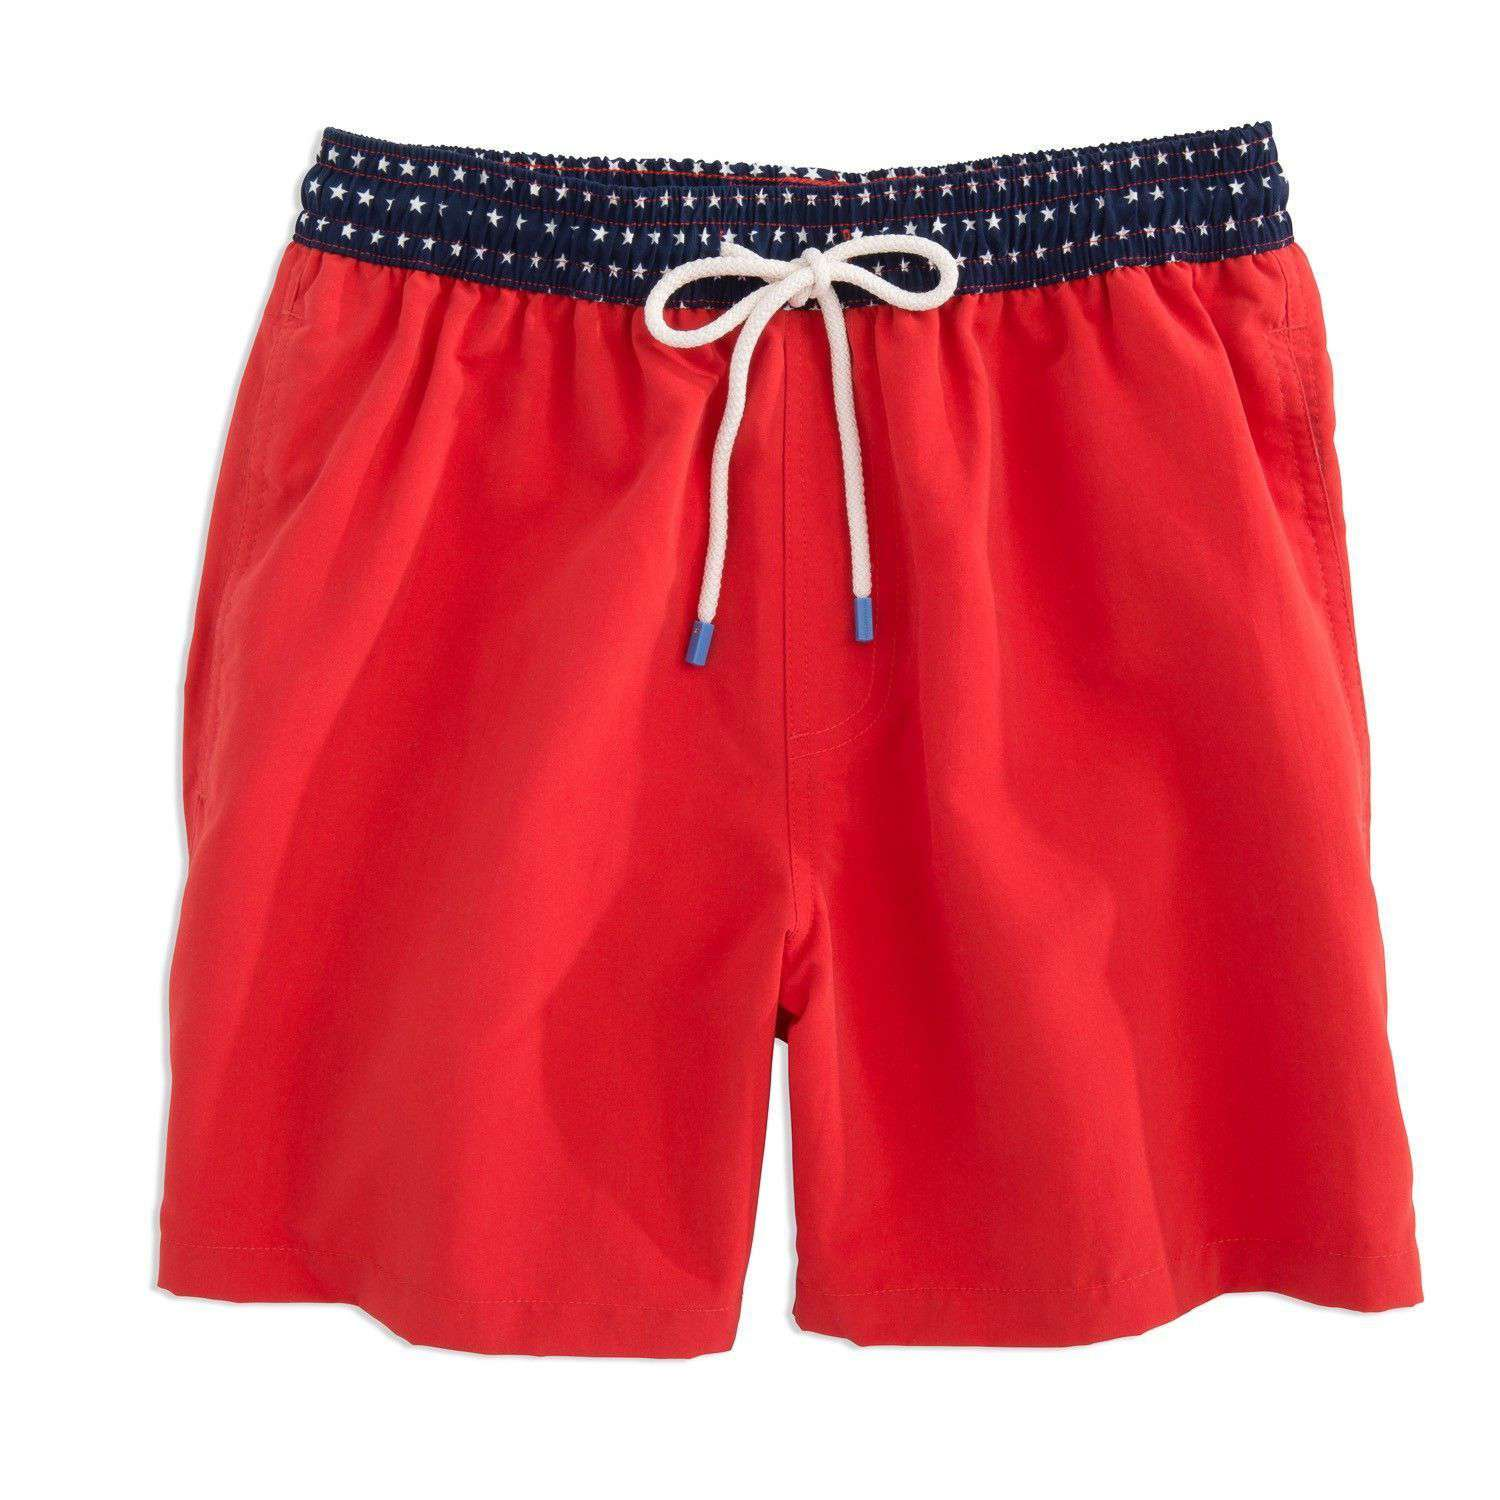 Men's Swimsuits - Stars Swim Trunk In Red By Southern Tide